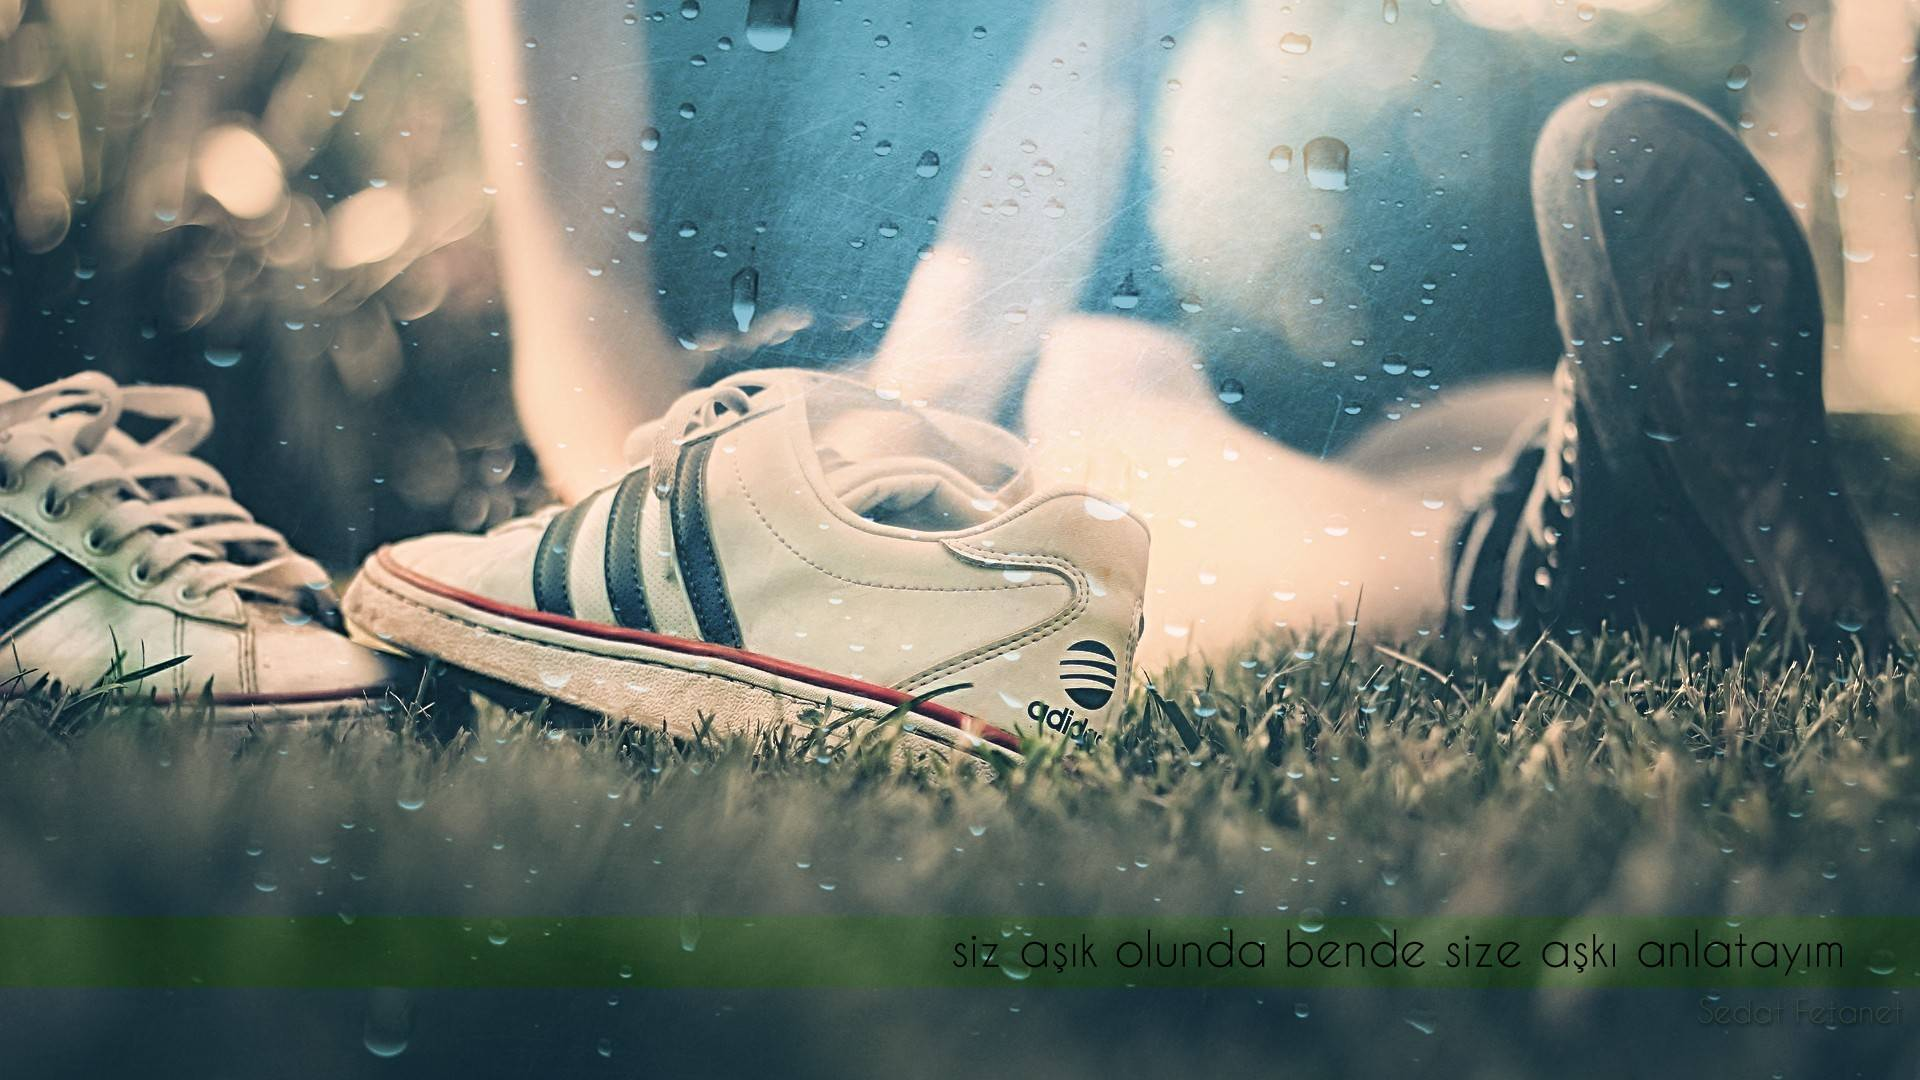 Adidas Turkey 19201080 Wallpaper 2160406 1920x1080